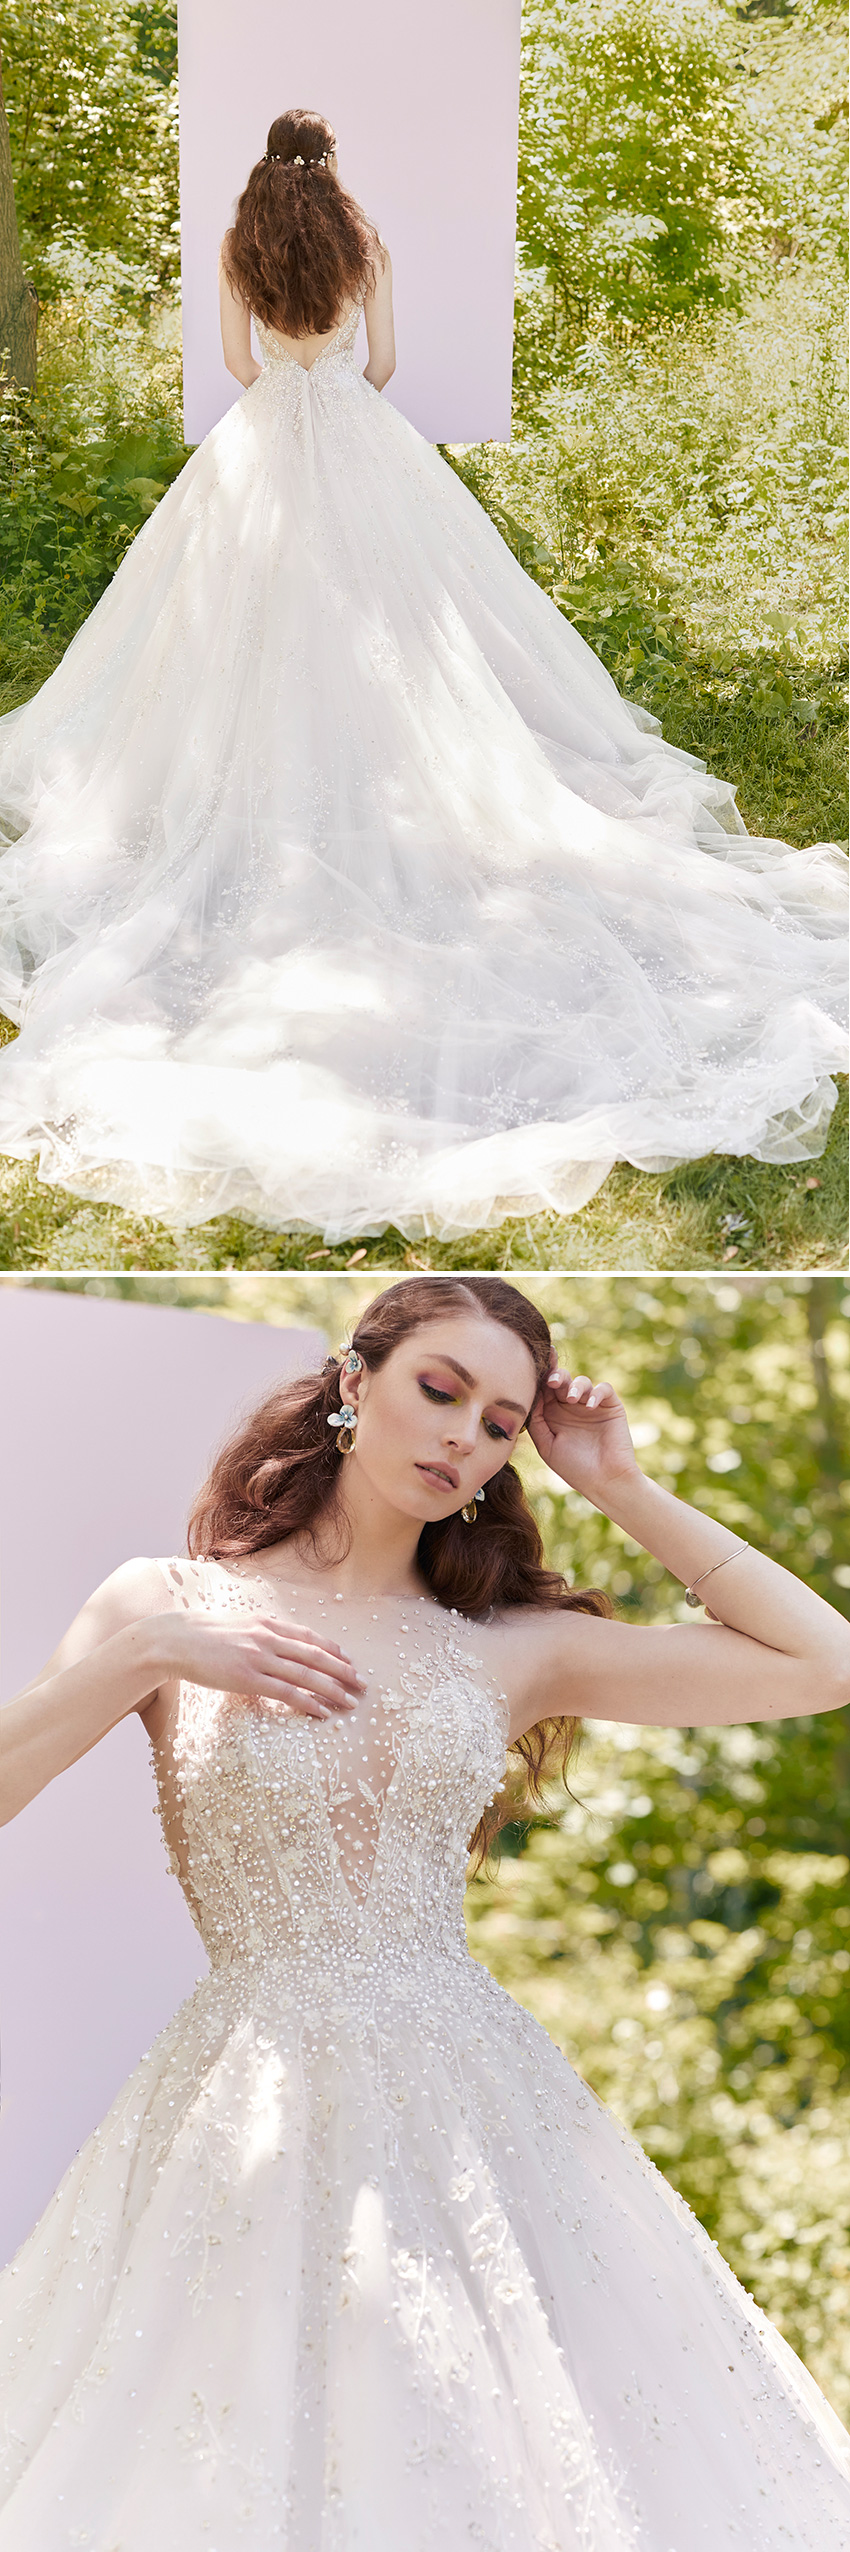 Ines Di Santo Spring 2021 Couture bridal collection highlights new lightness dress featured in Perfect Wedding Magazine